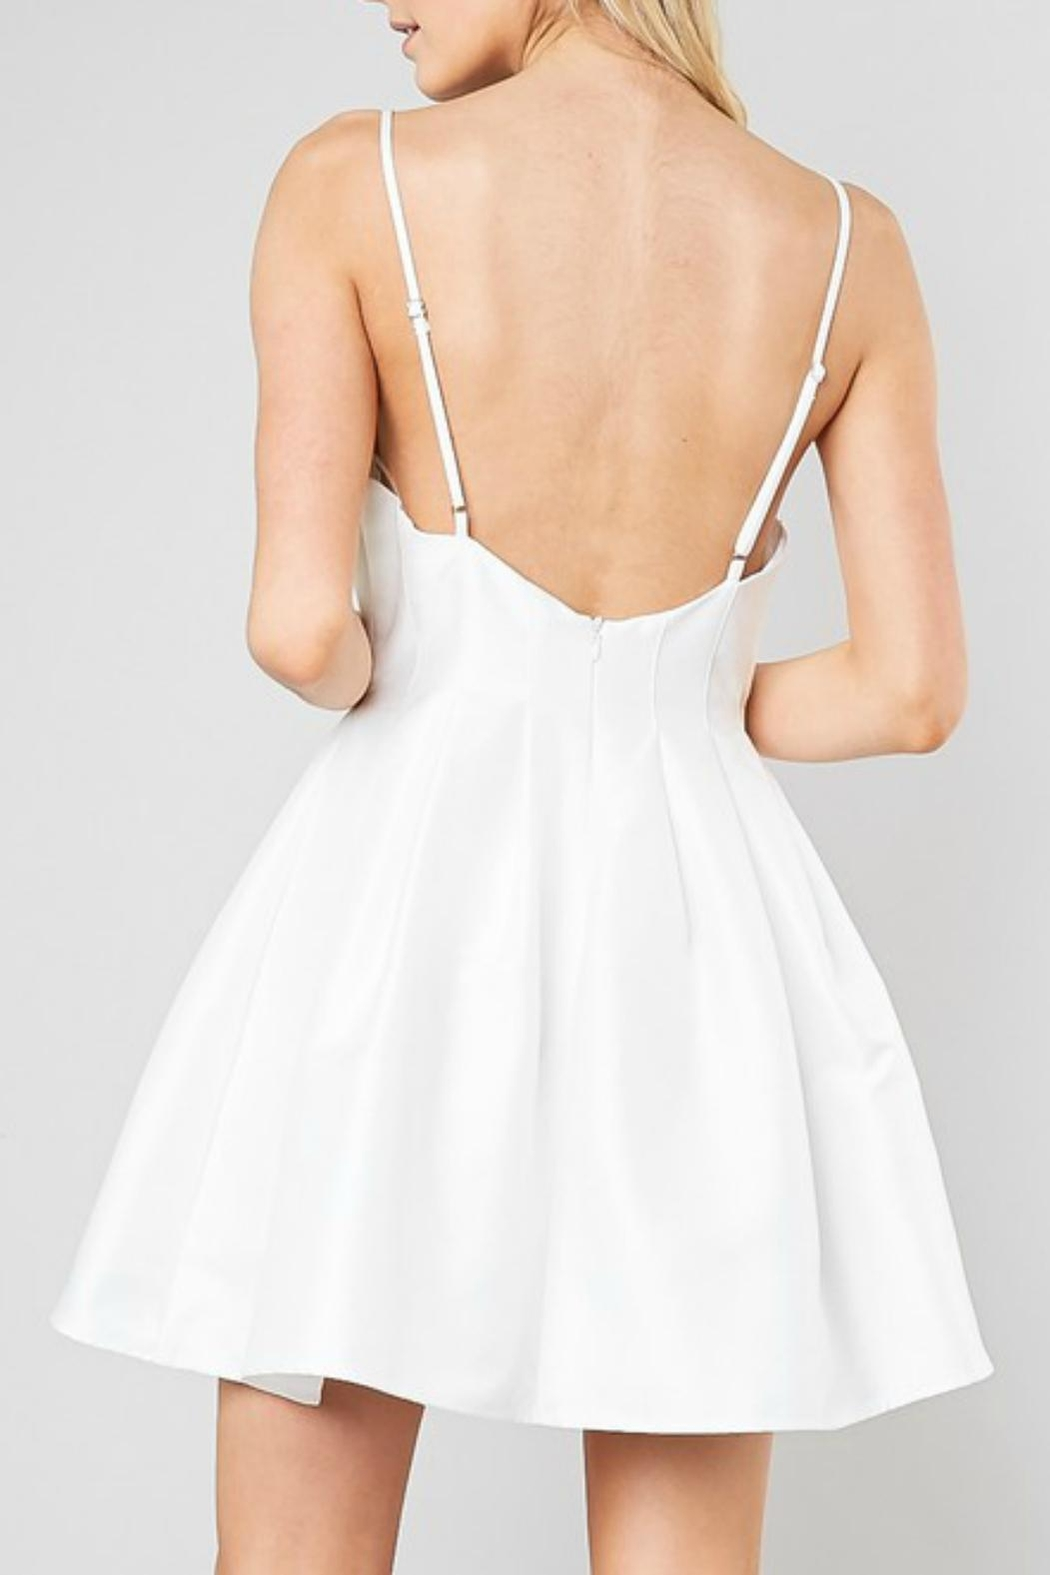 Pretty Little Things Satin Ballerina Dress - Side Cropped Image